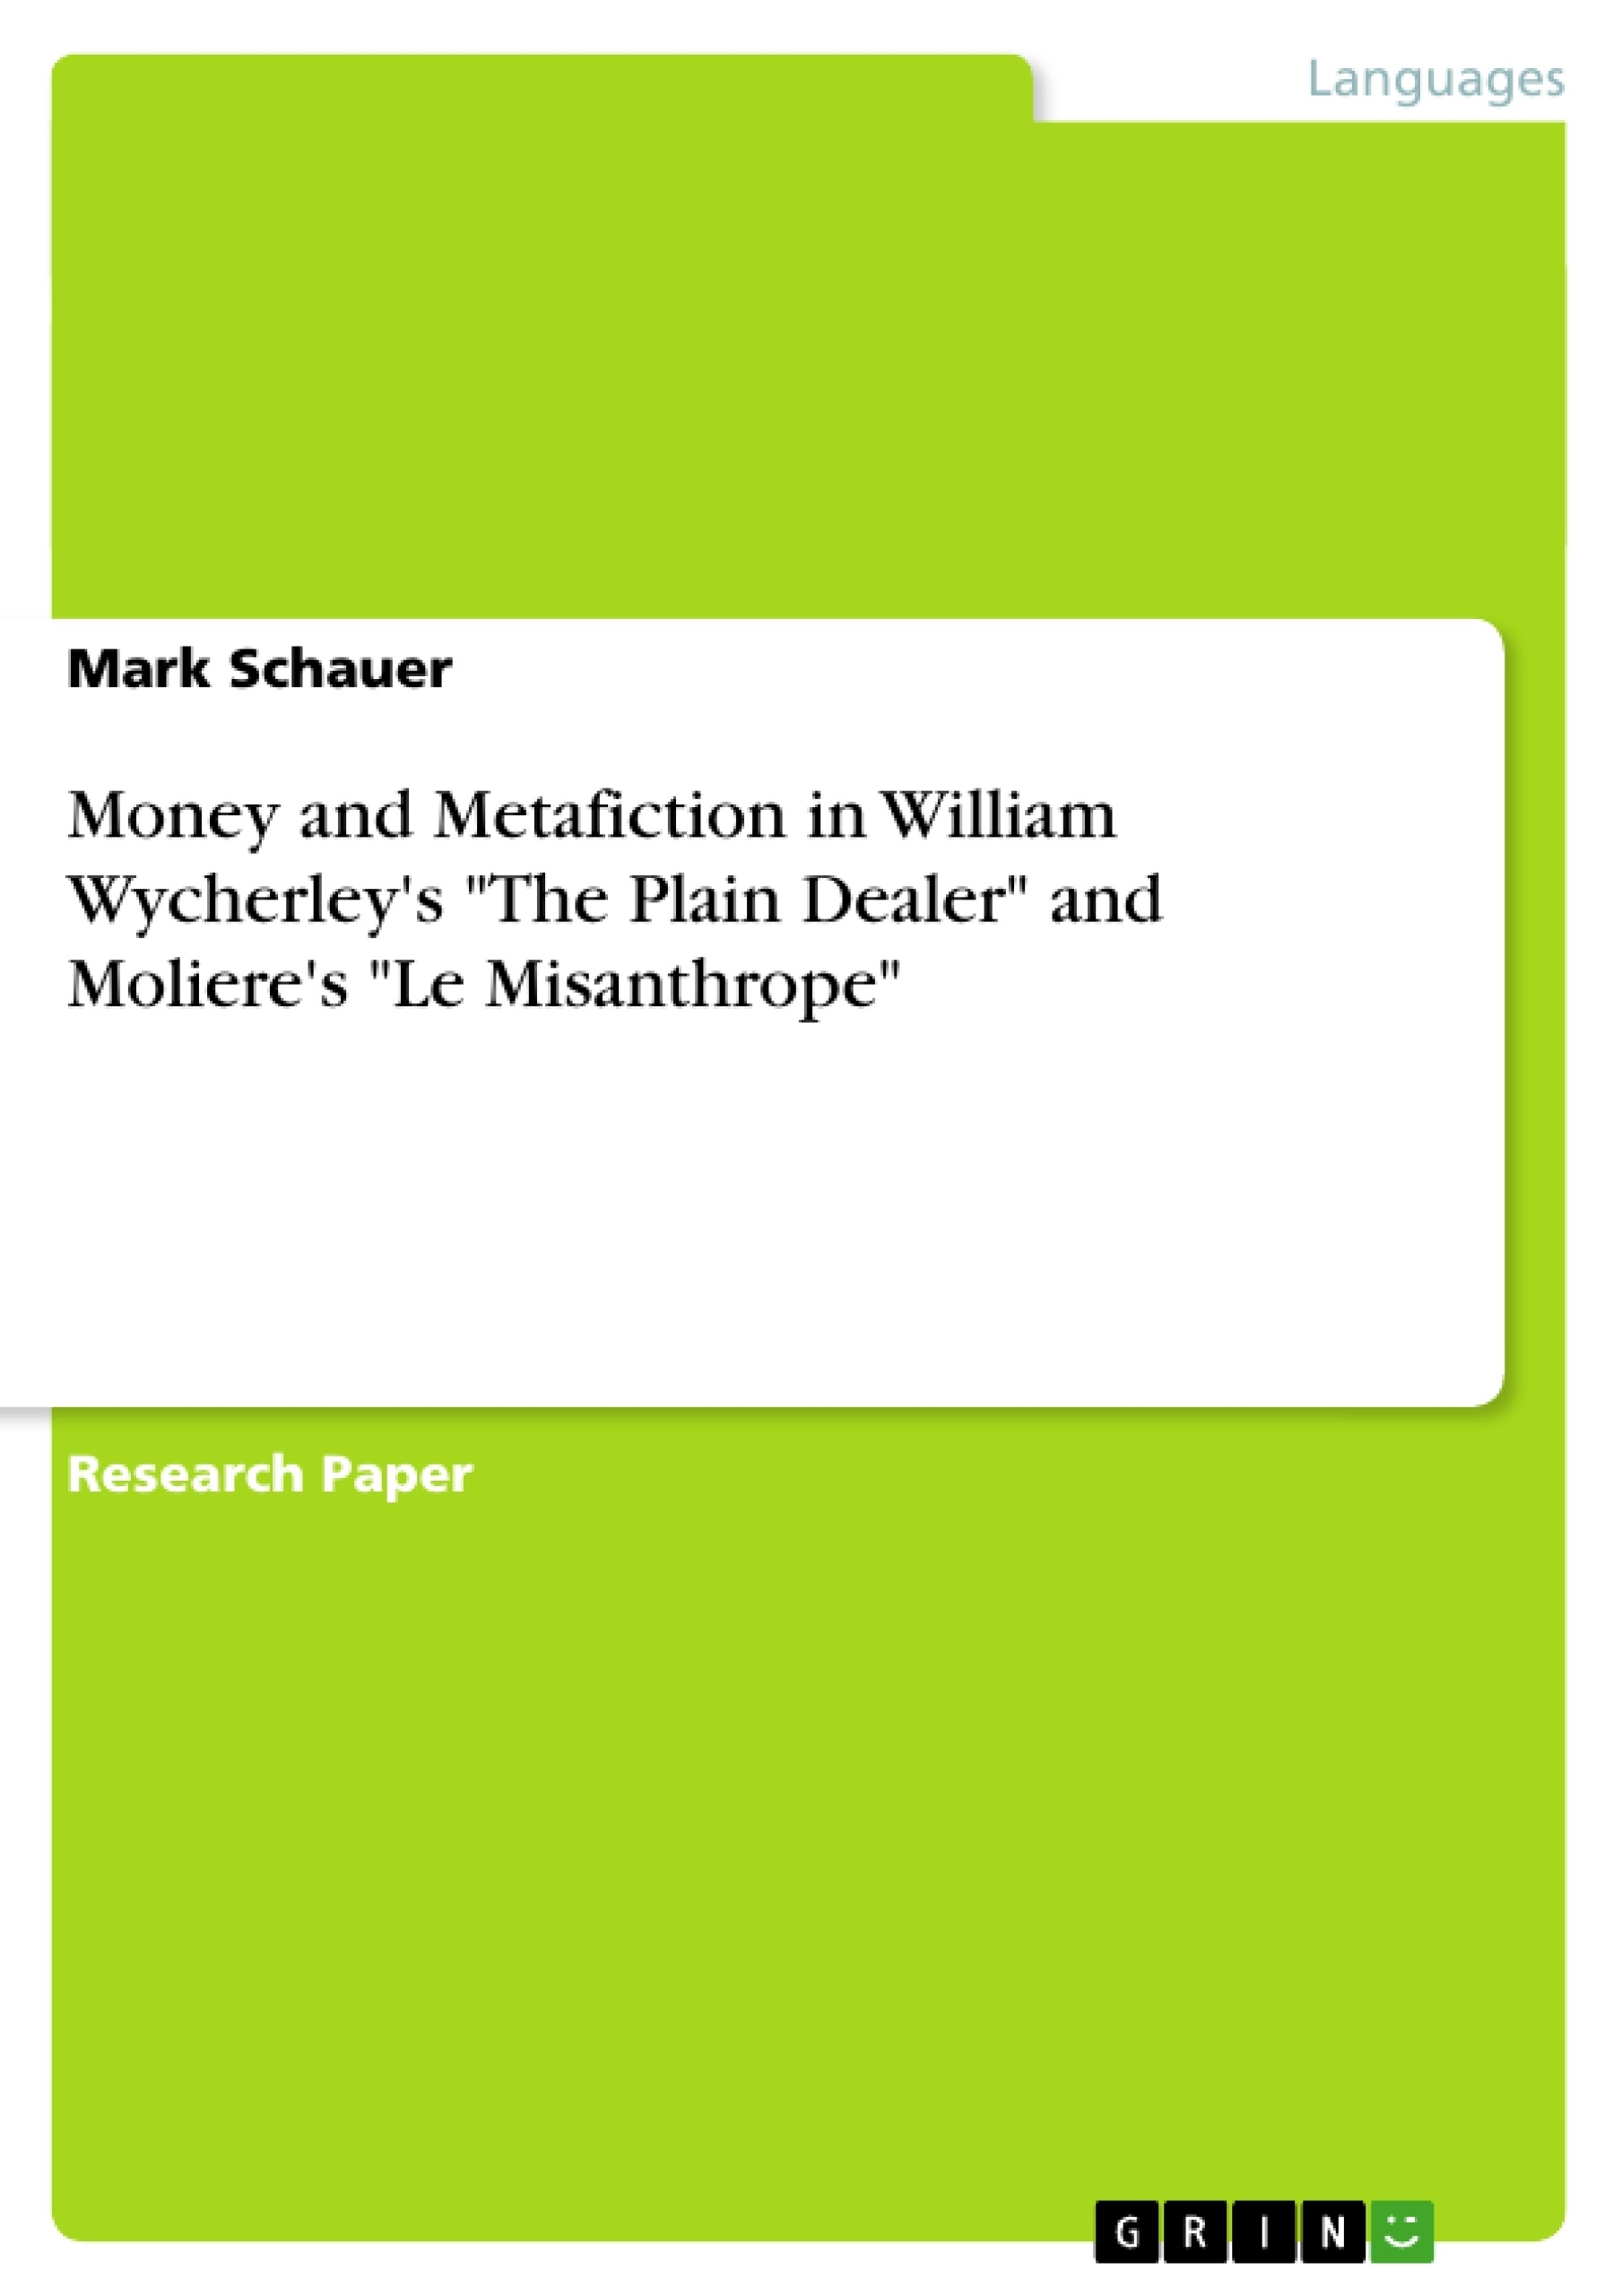 """Title: Money and Metafiction in William Wycherley's """"The Plain Dealer"""" and Moliere's """"Le Misanthrope"""""""